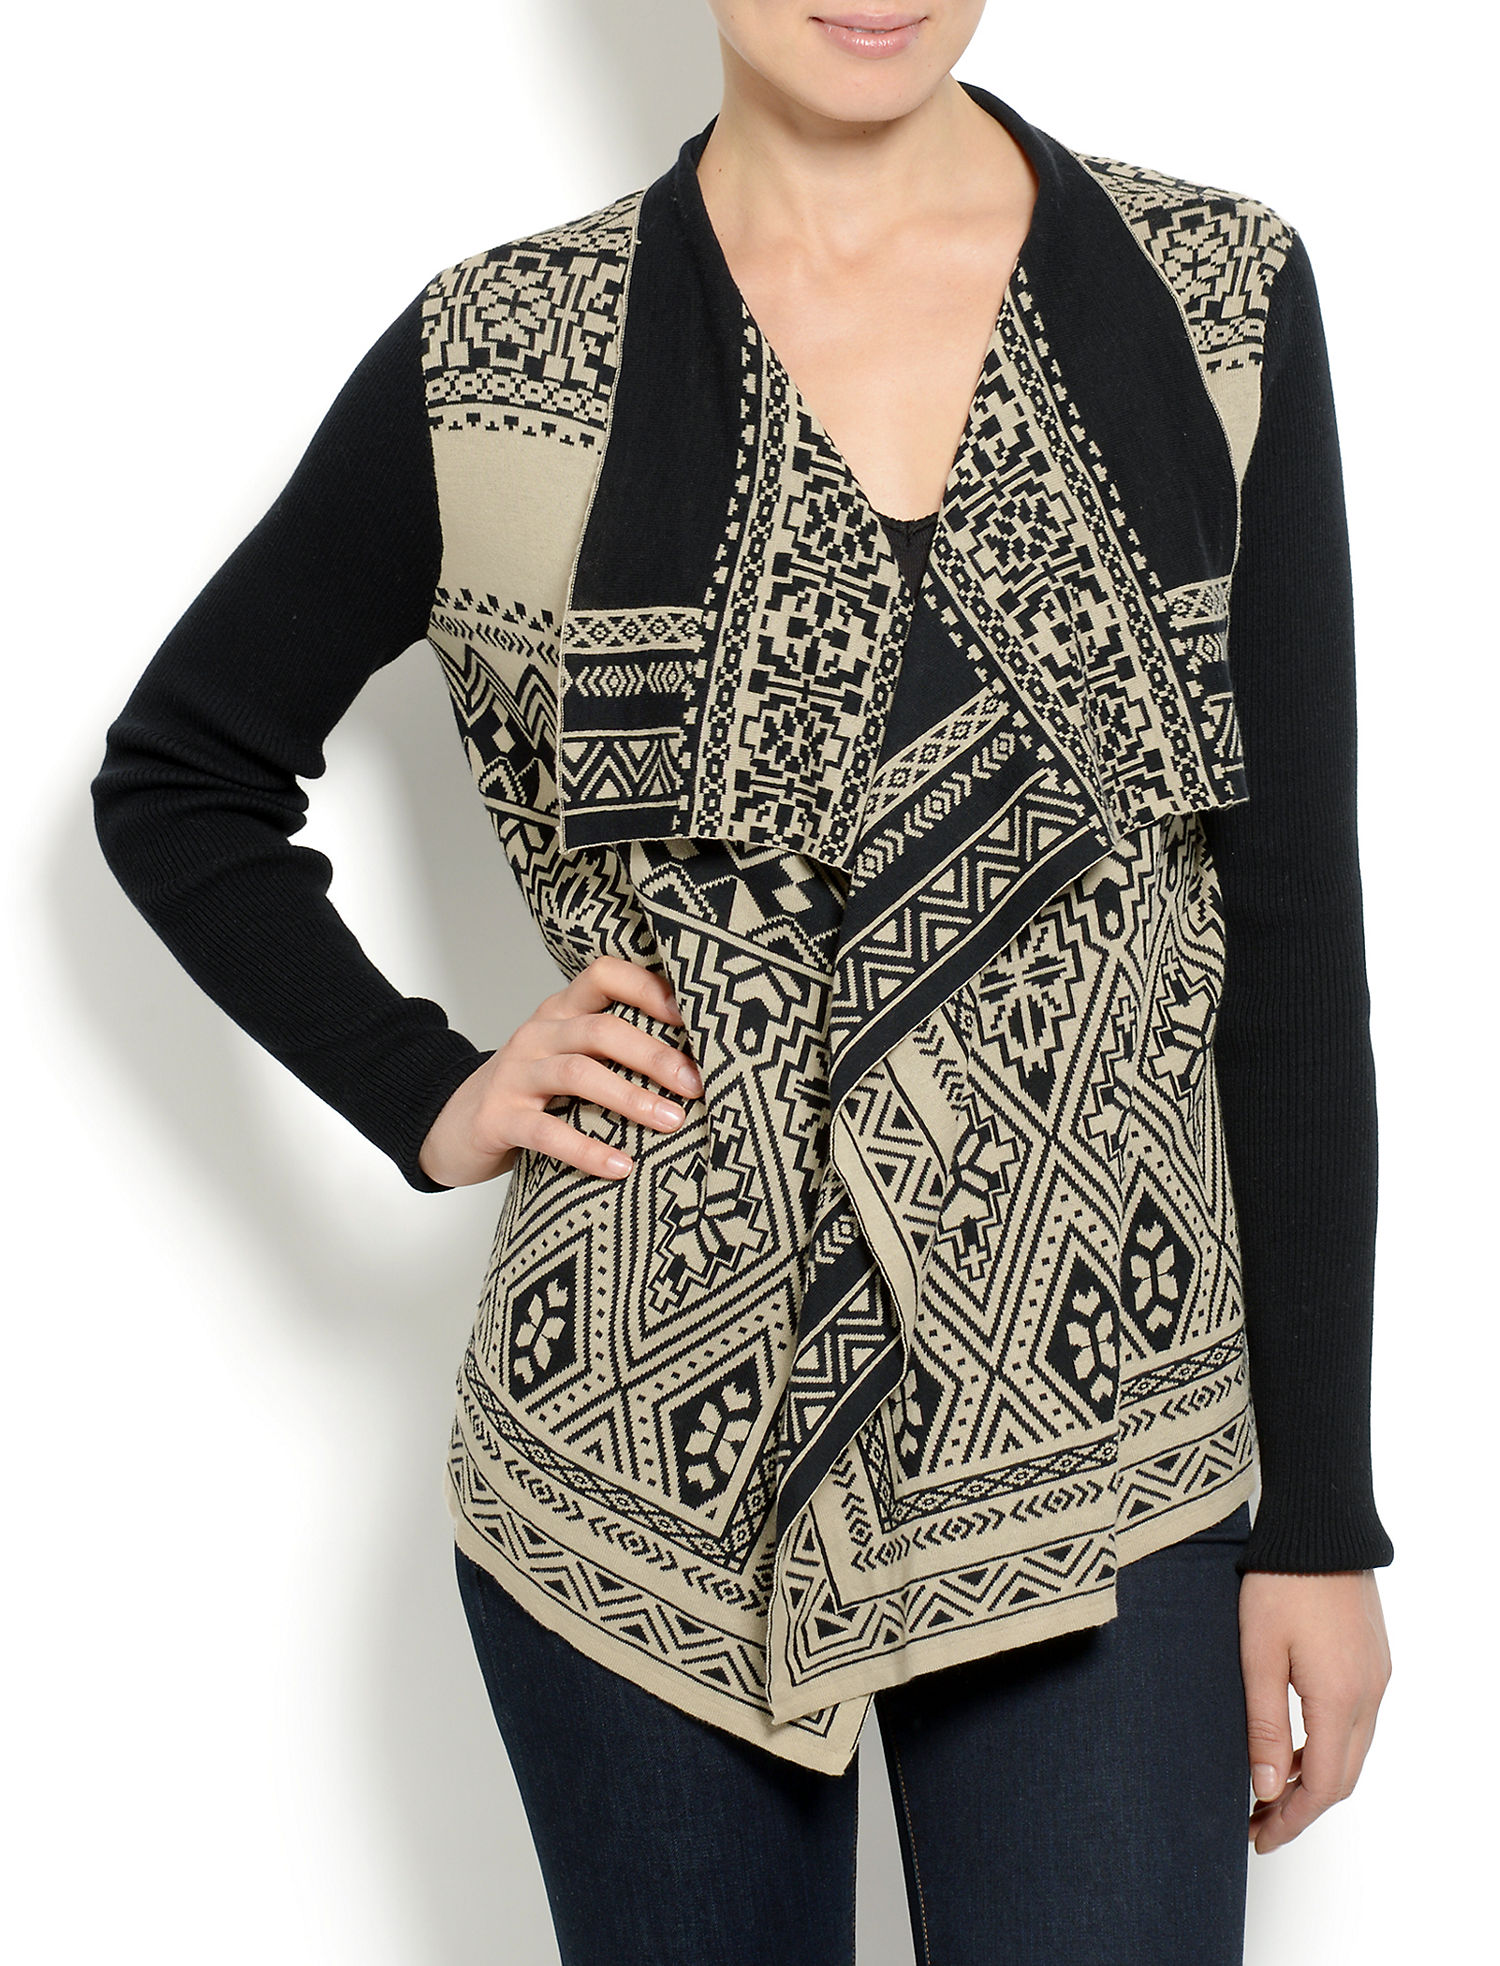 Lucky Brand Womens Waterfall Cardigan - Medium - Black/Tan Print ...